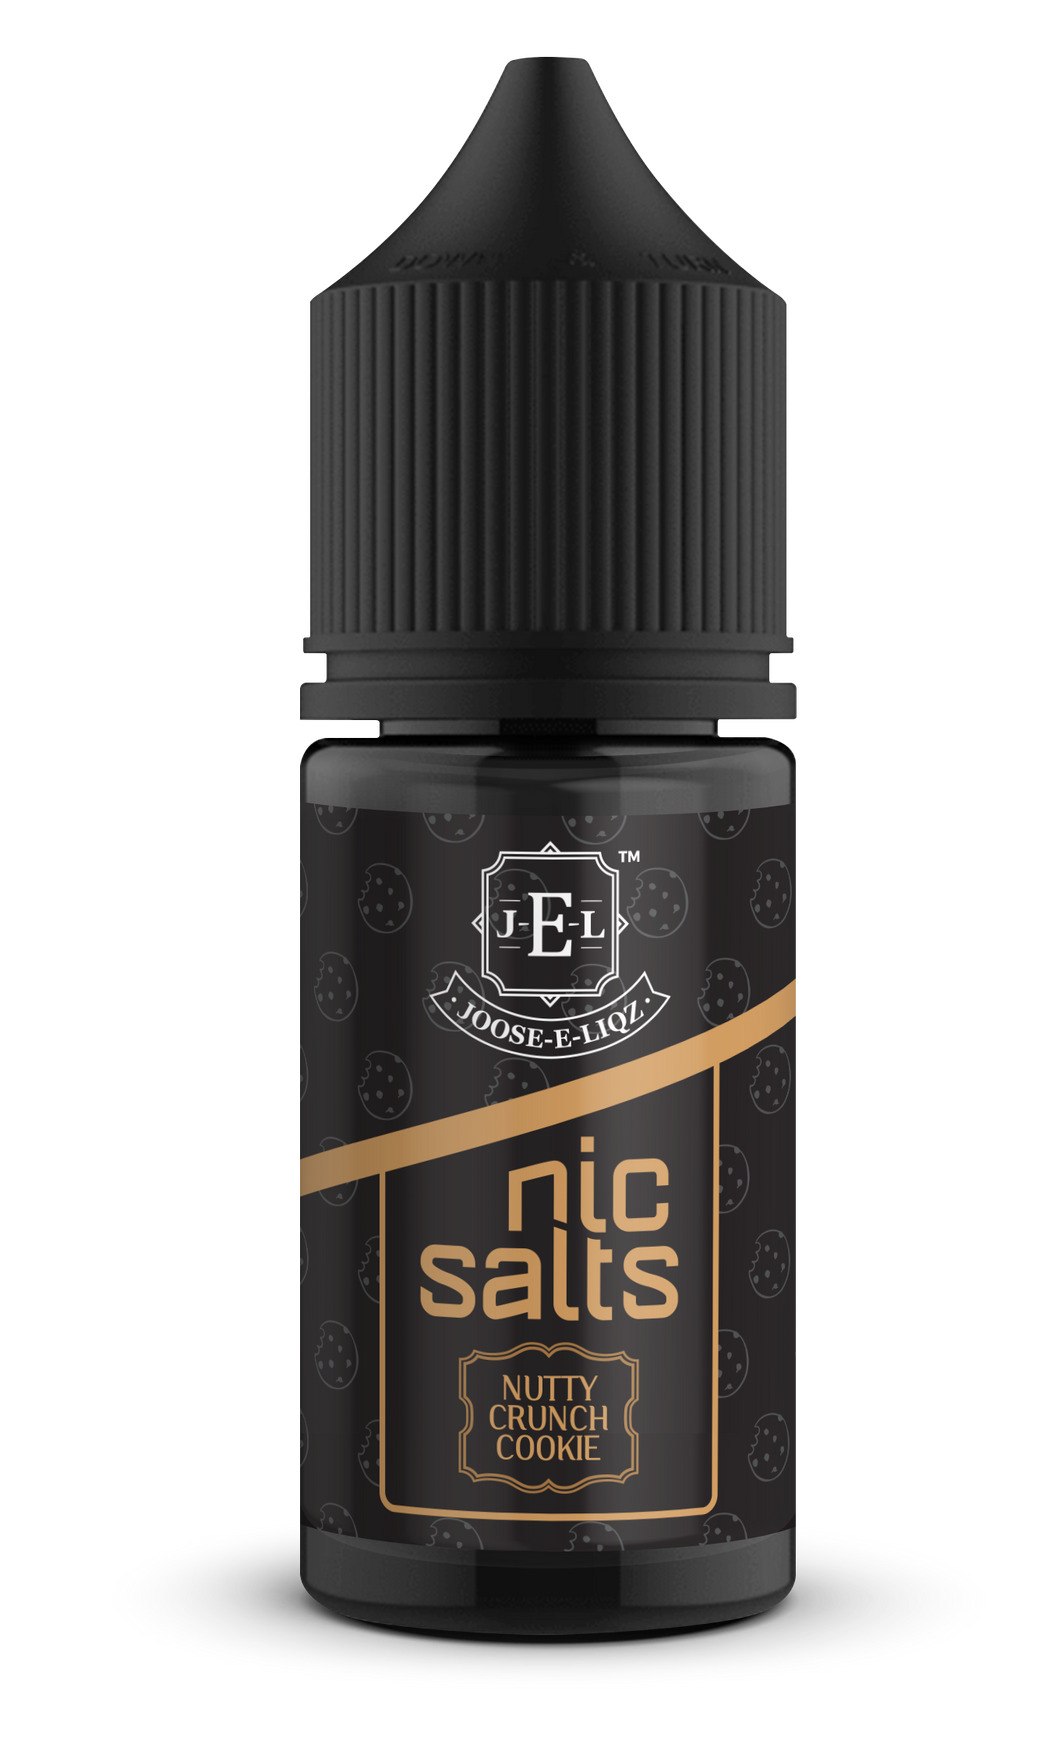 JEL Nic Salts - Nutty Crunch Cookie